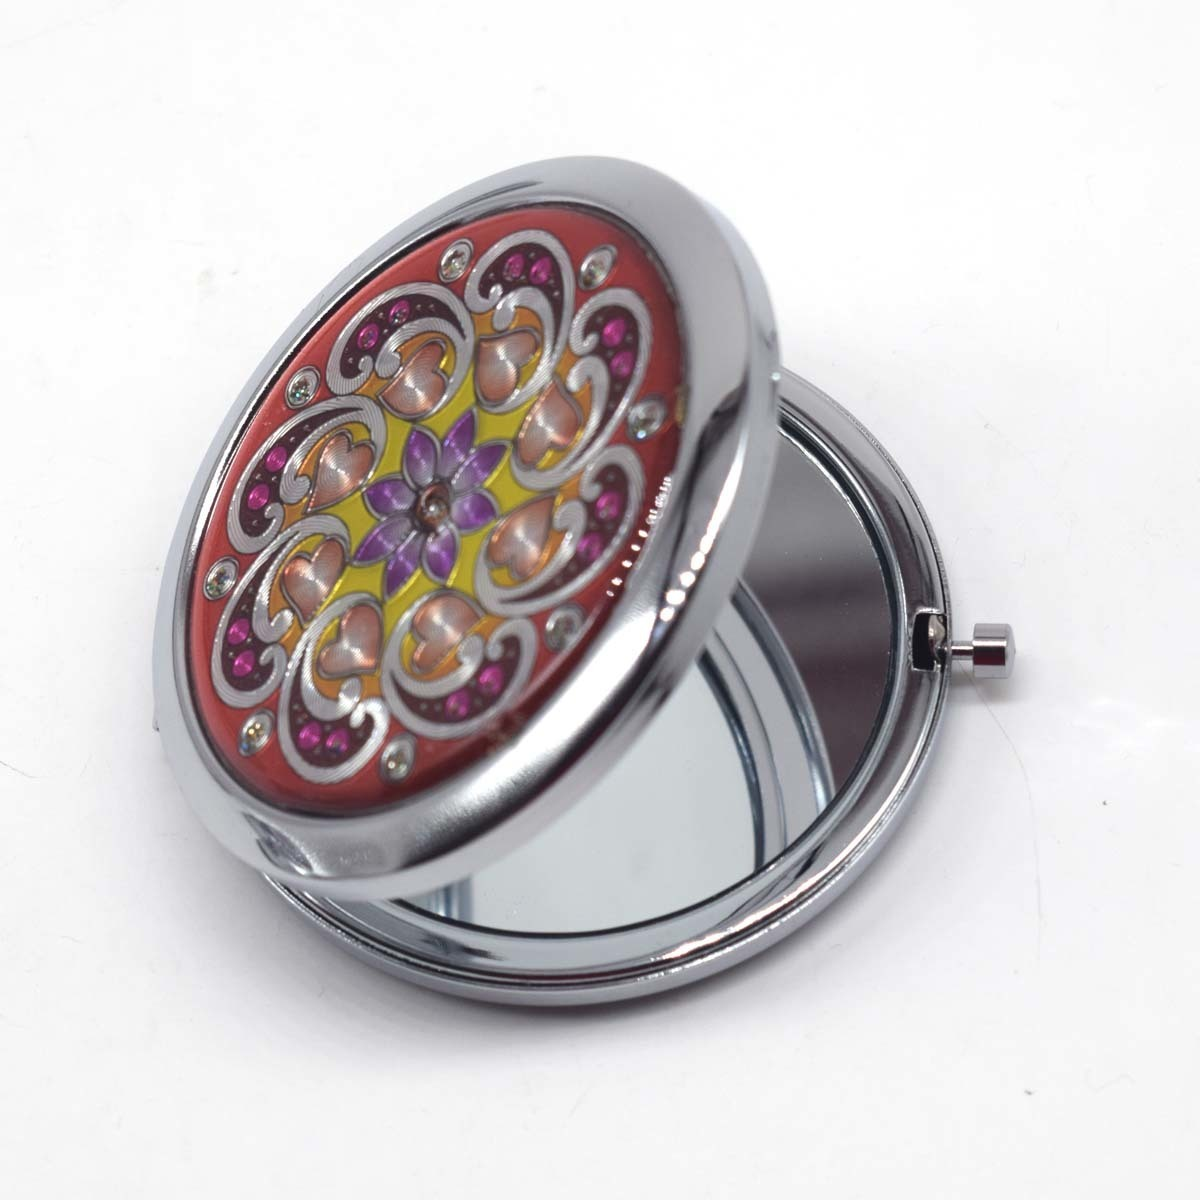 Portable Foldable Pocket Metal Makeup Compact Mirror Woman Cosmetic Mini Normal Mirror Double Sides Mirrors